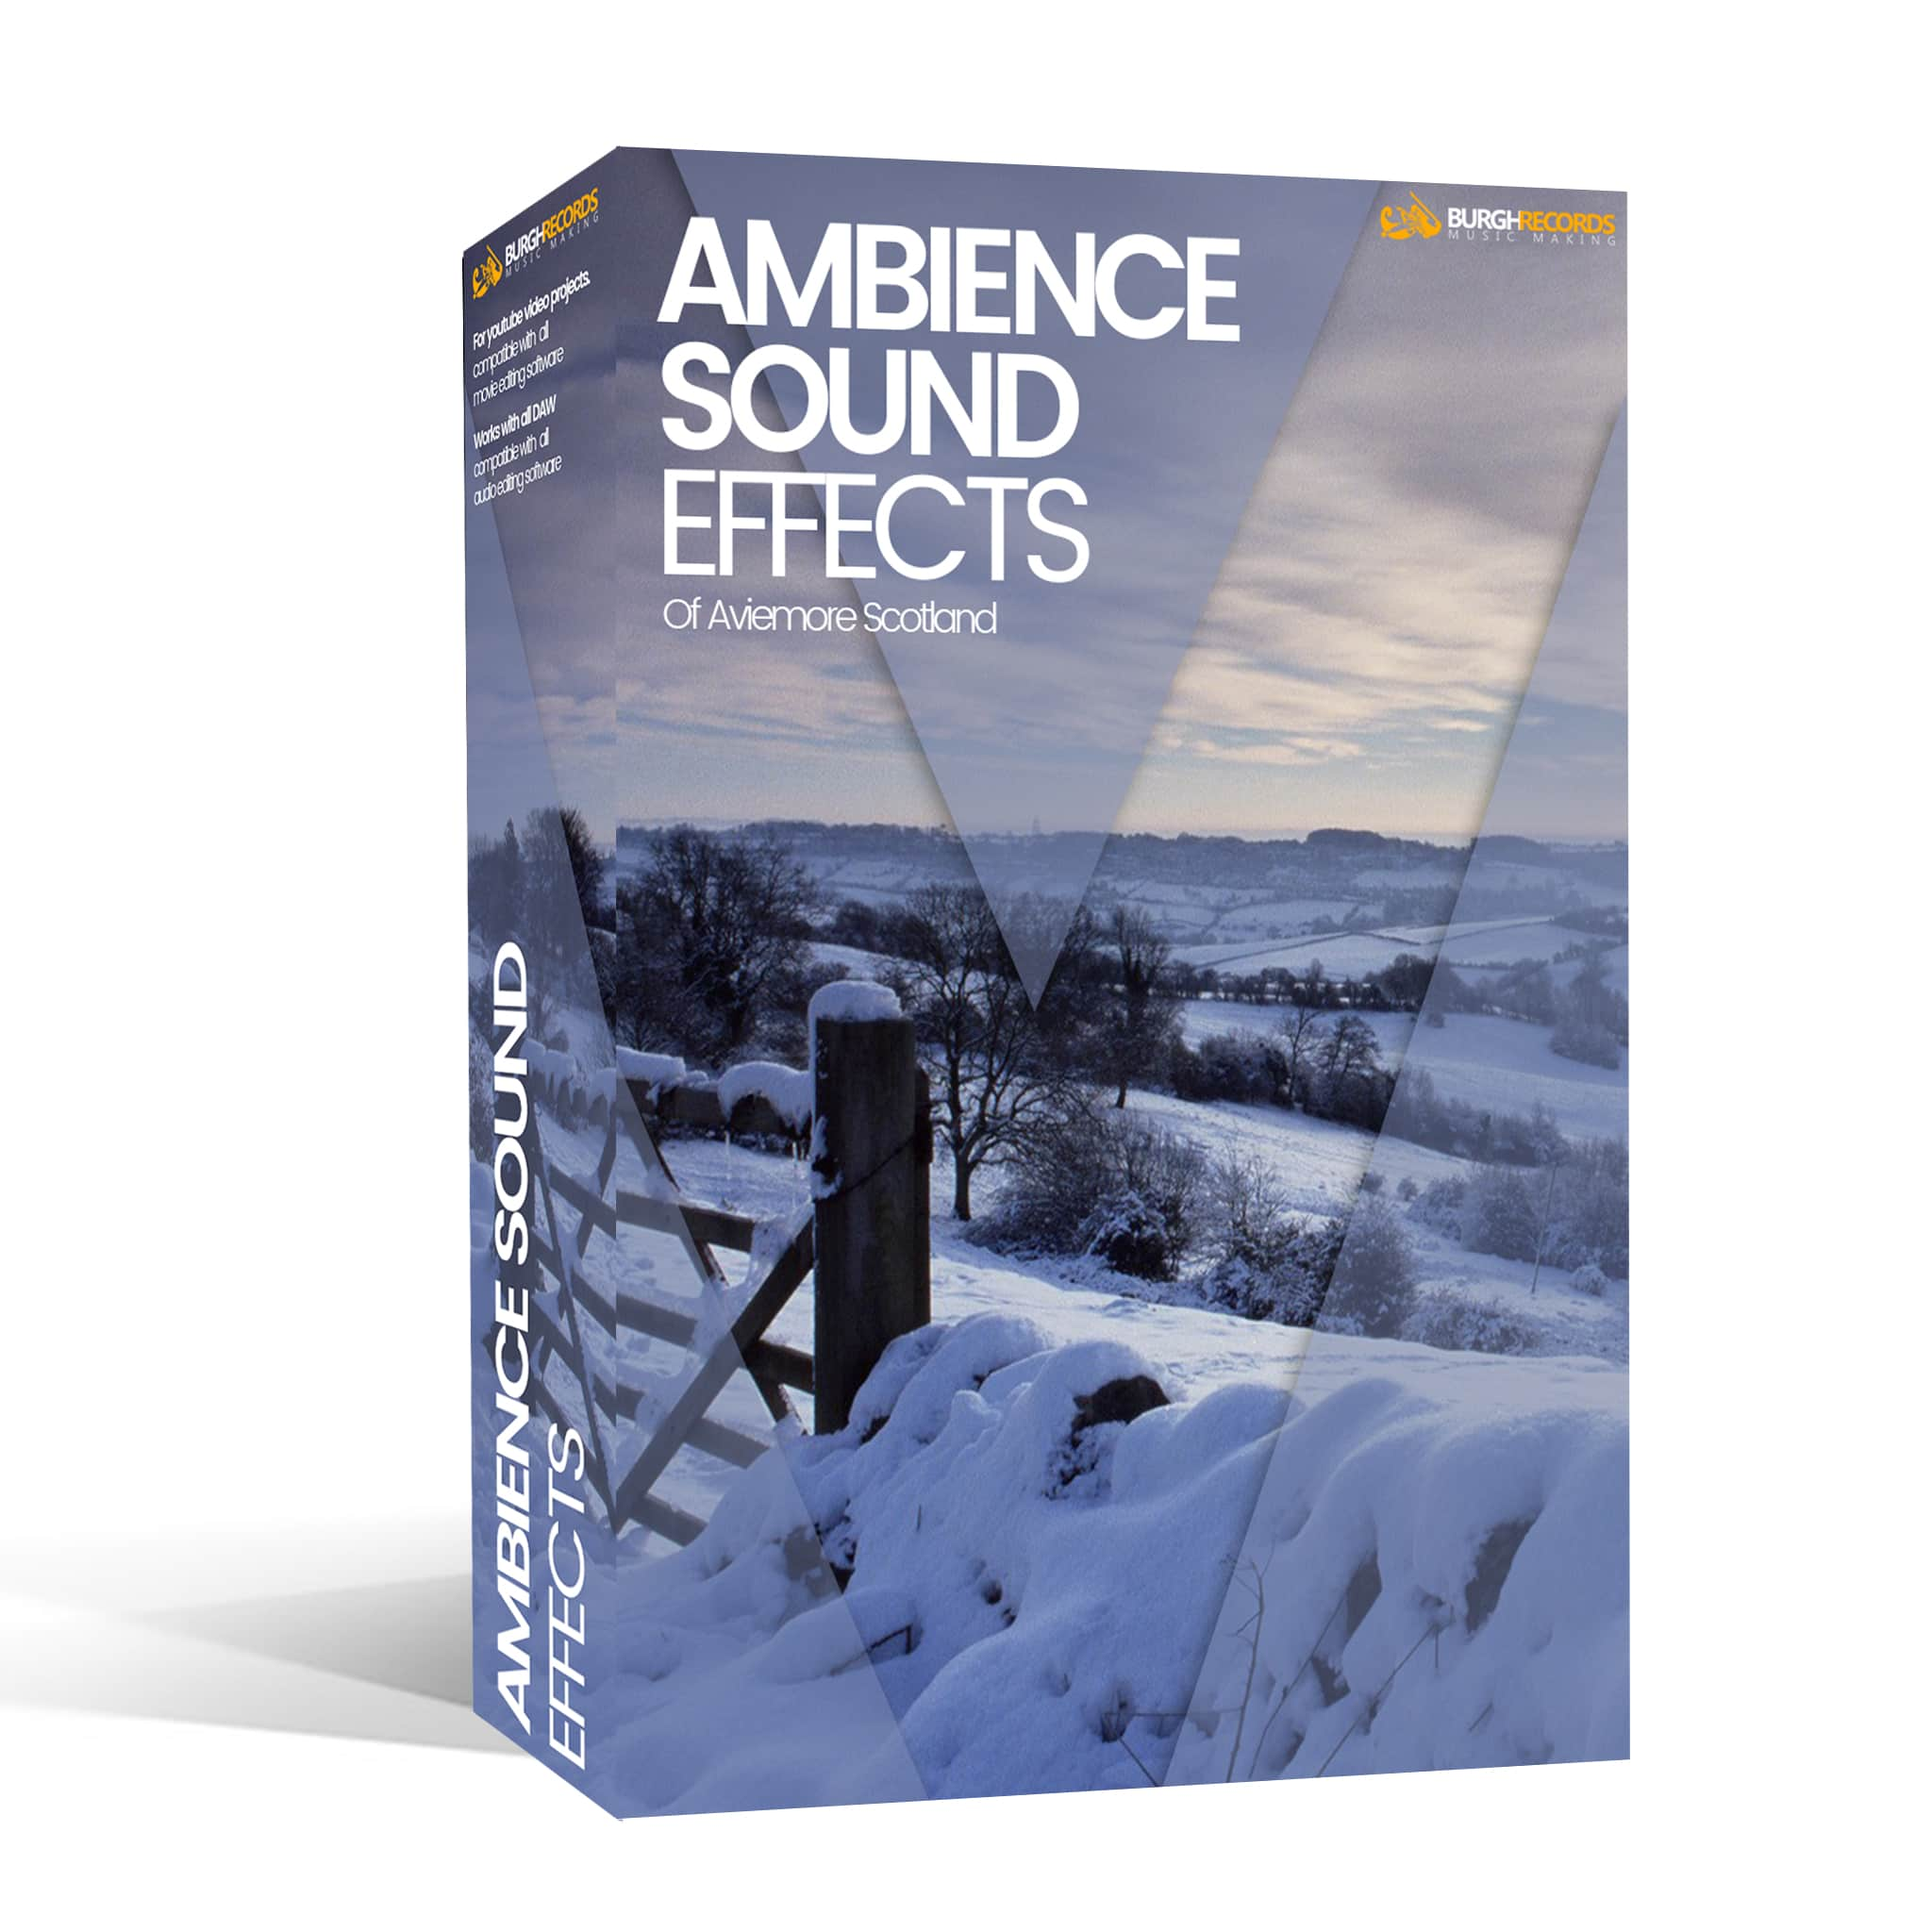 Ambience Sound Effects